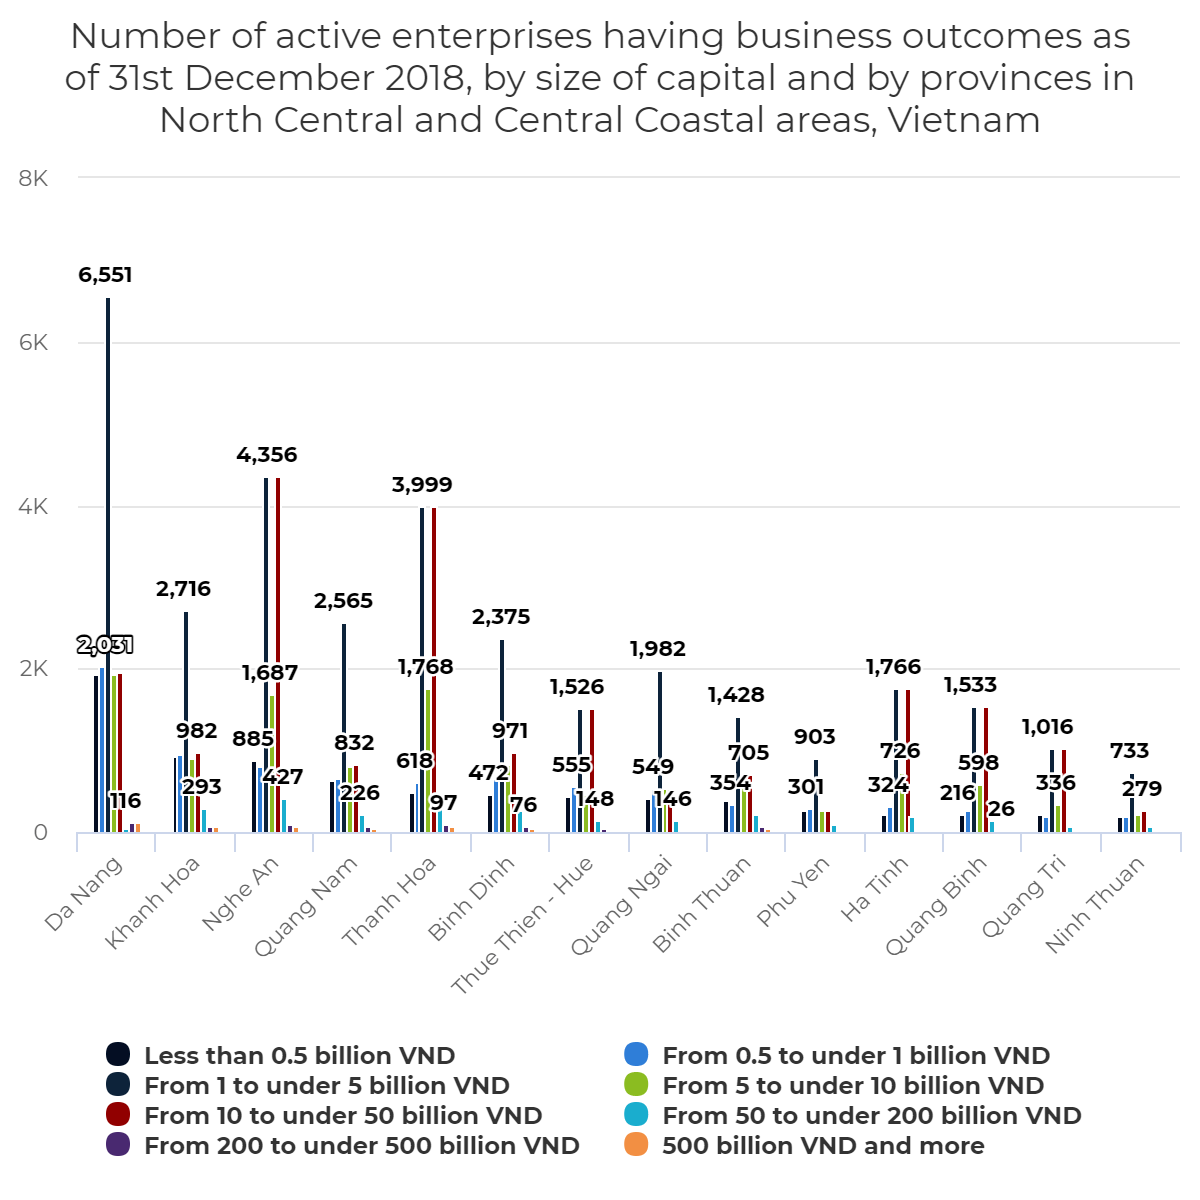 Number of active enterprises having business outcomes as of 31st December 2018, by size of capital and by provinces in North Central and Central Coastal areas, Vietnam